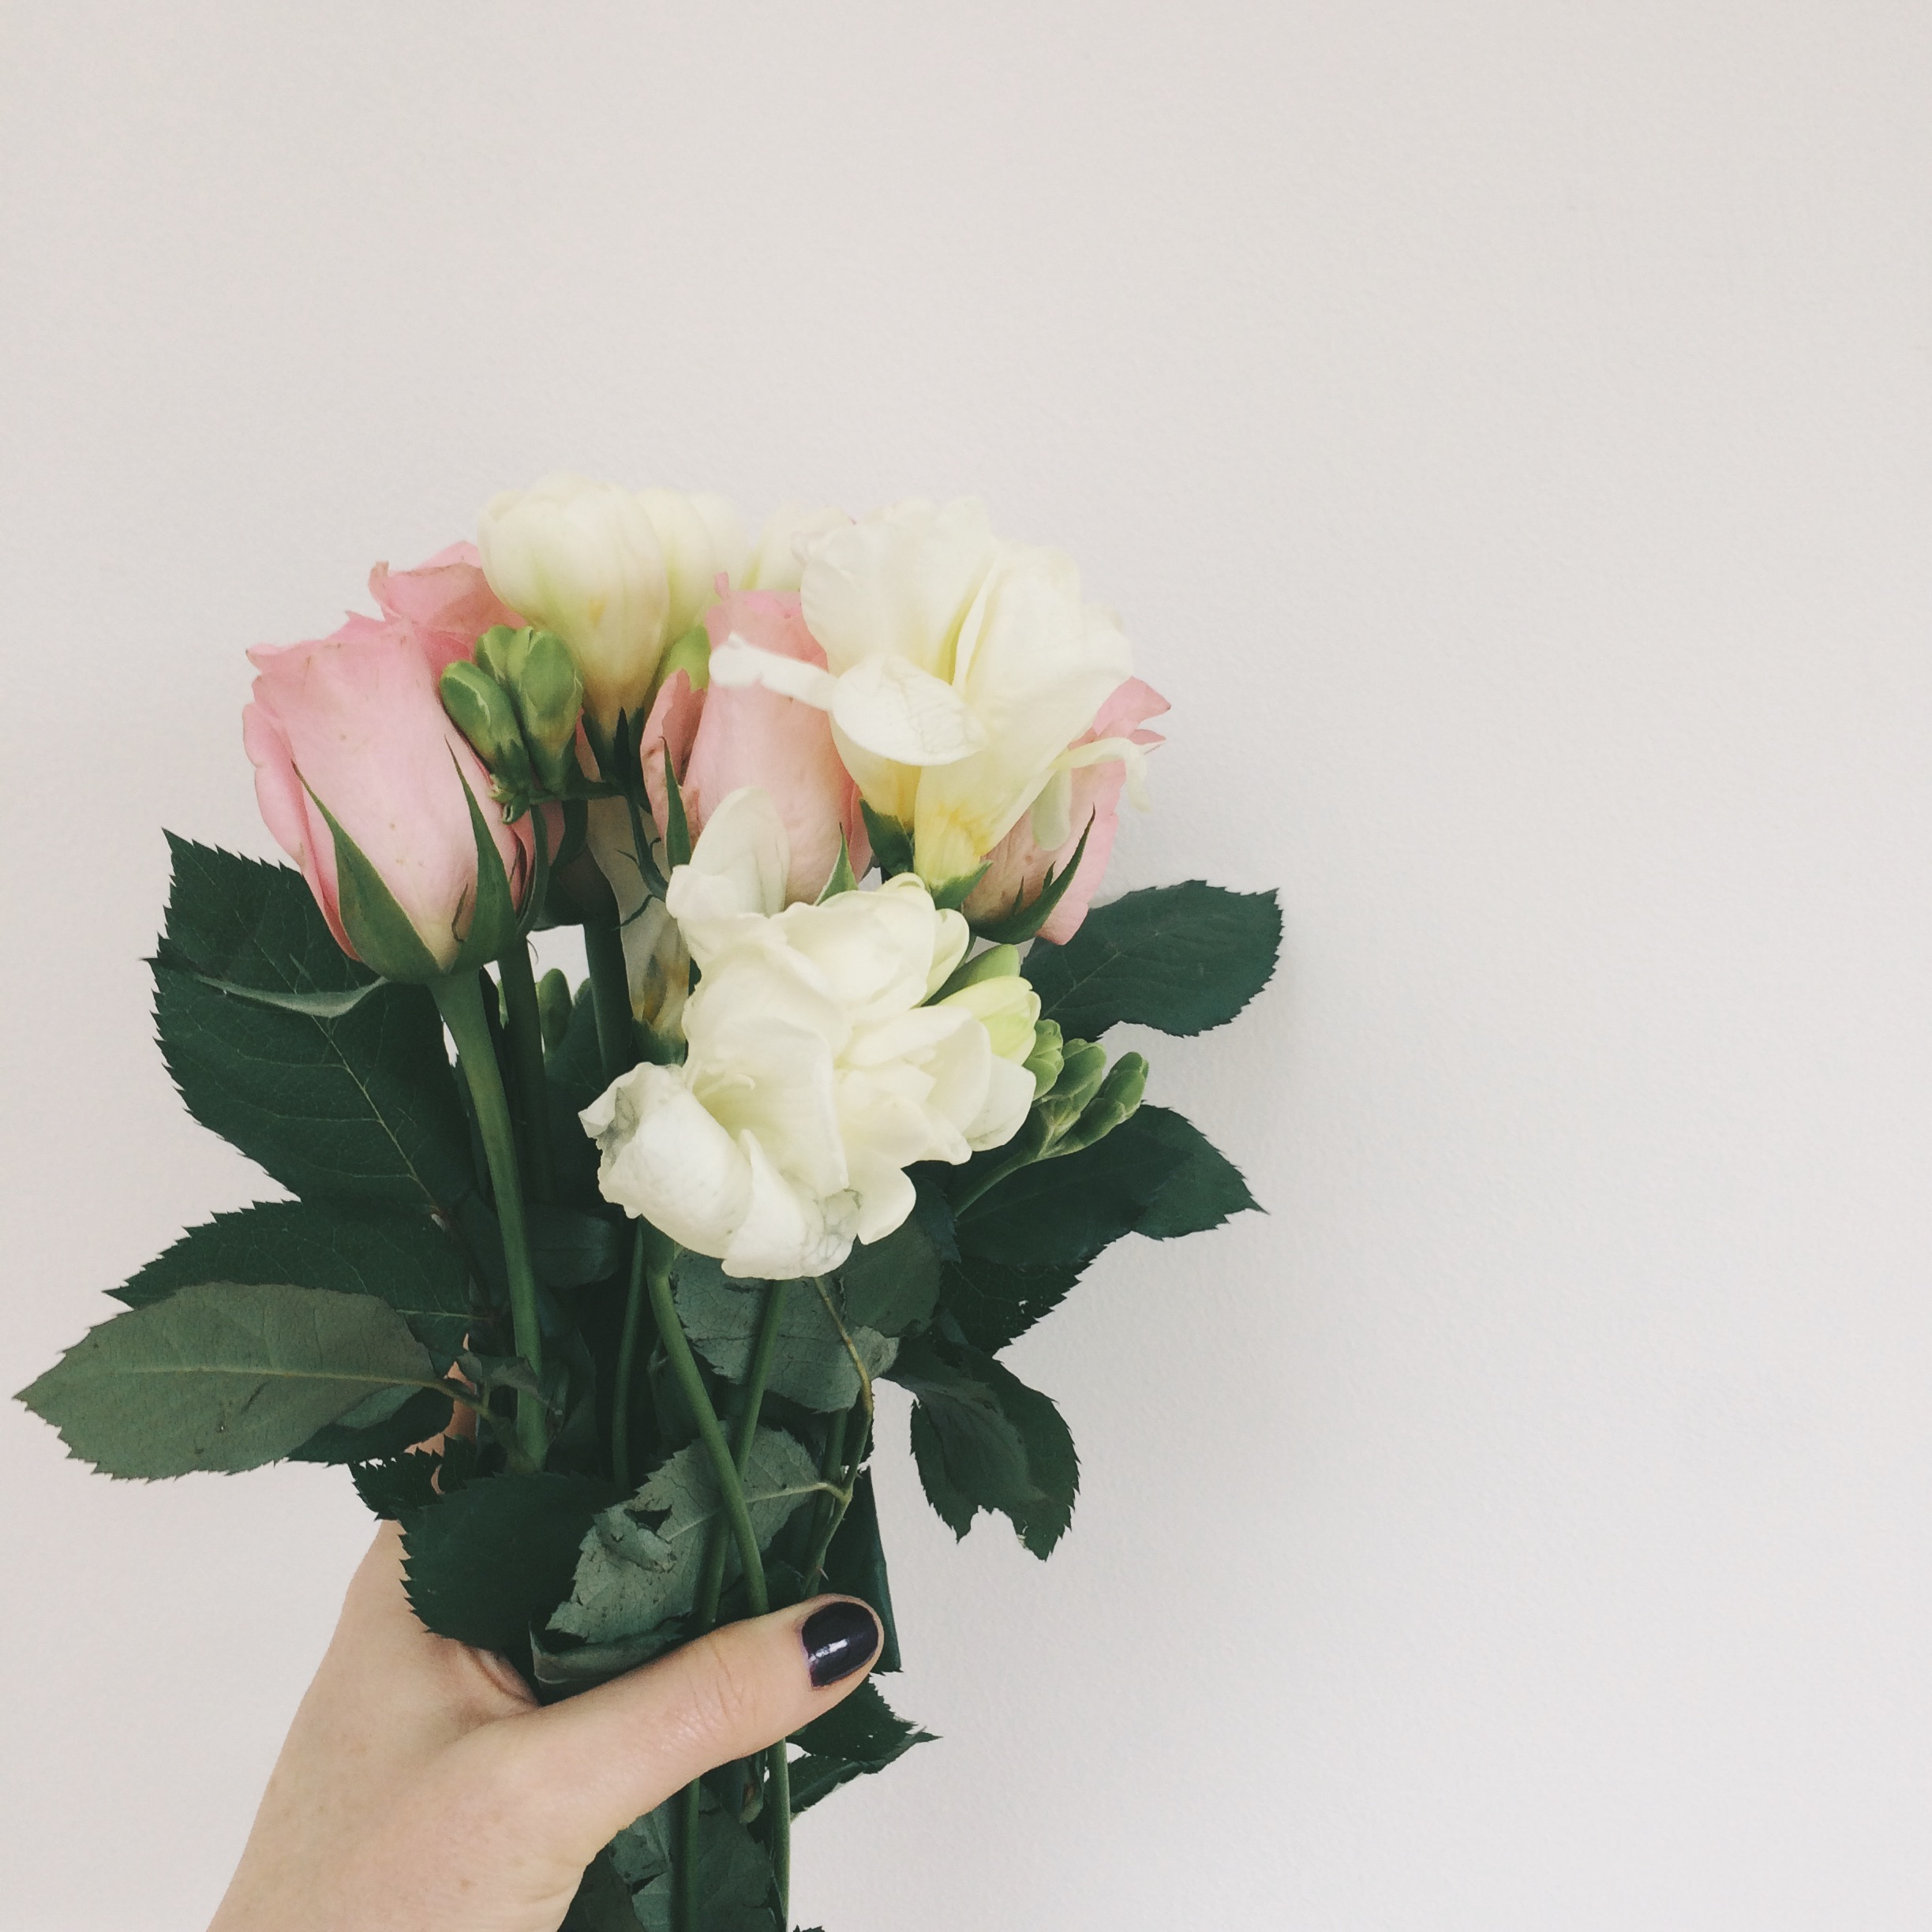 12 instagram photos from one bunch of flowers